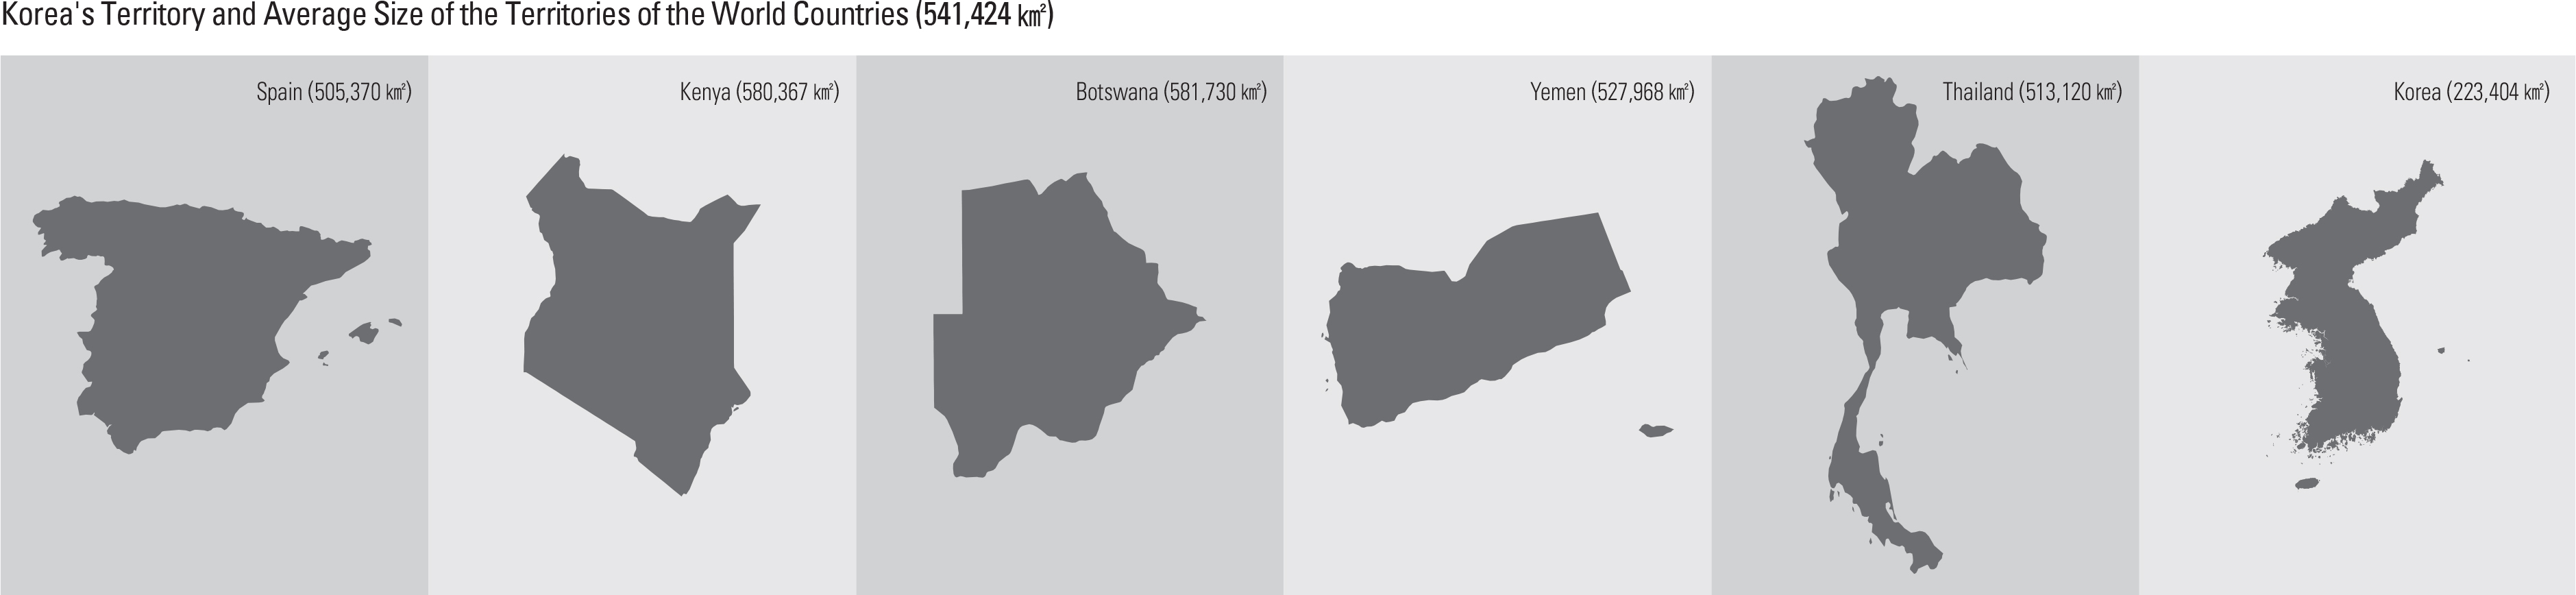 Korea's Territory and Average Size of the Territories of the World Countries